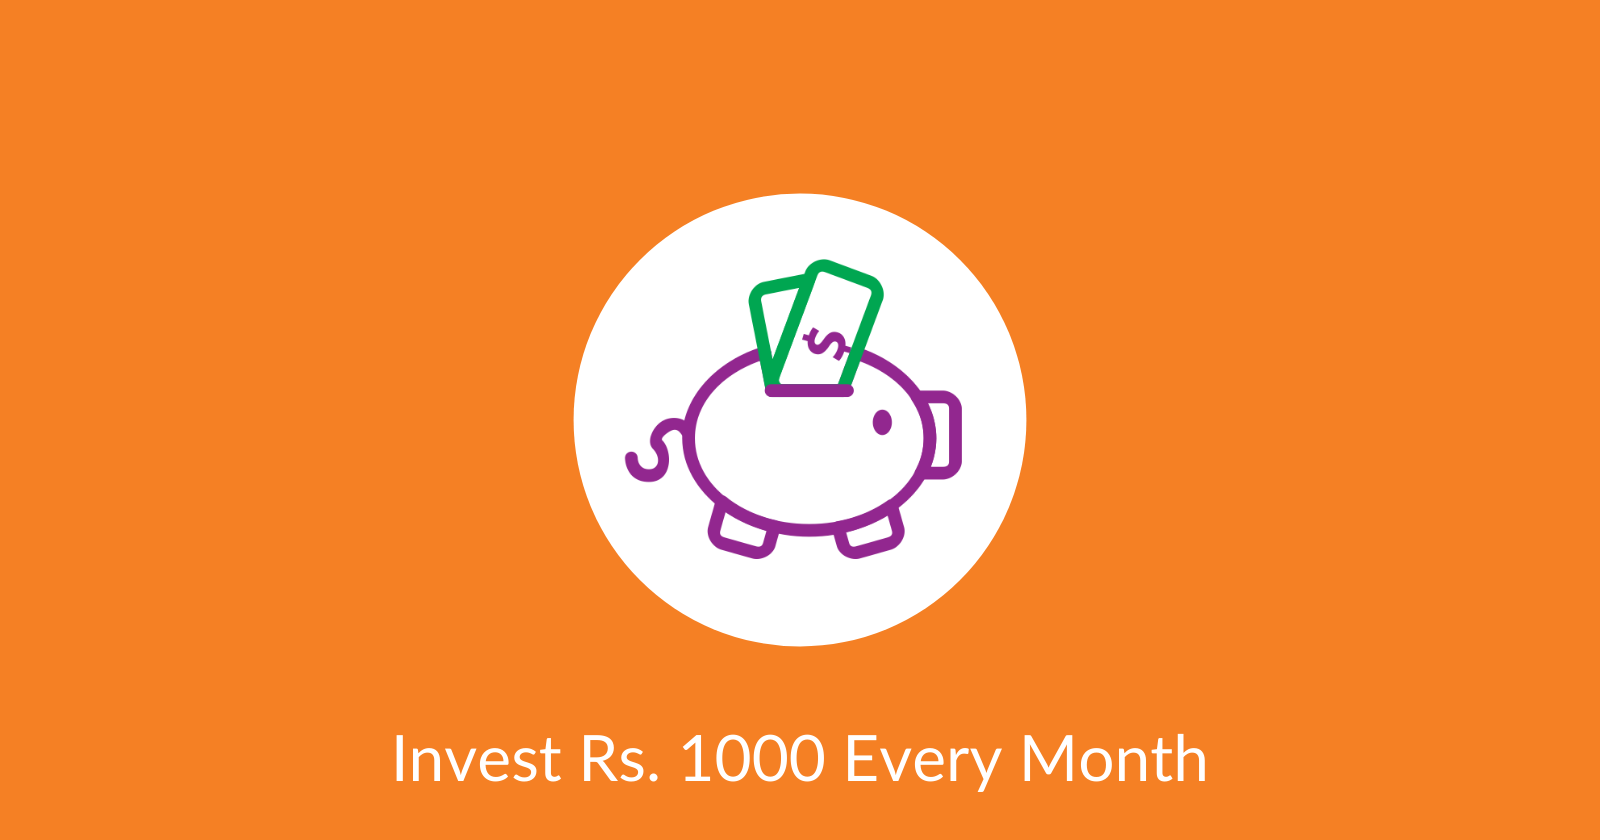 invest-1000-every-month